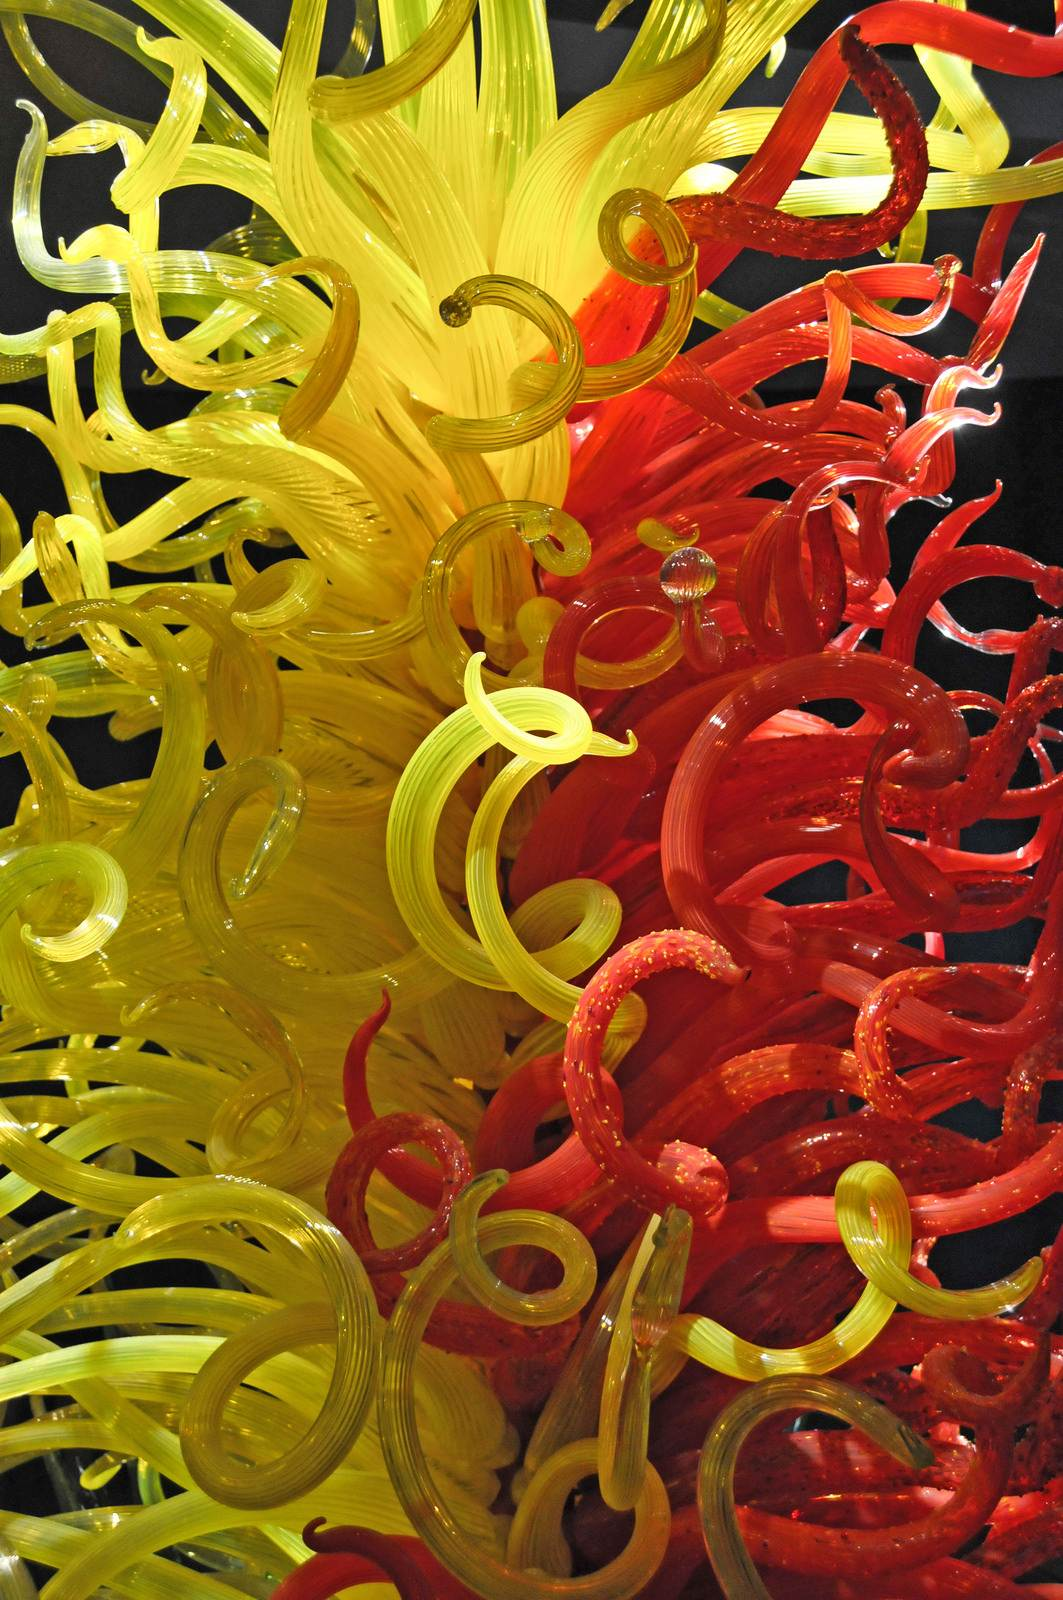 chihuly4 Chihuly Collection in St. Petersburg